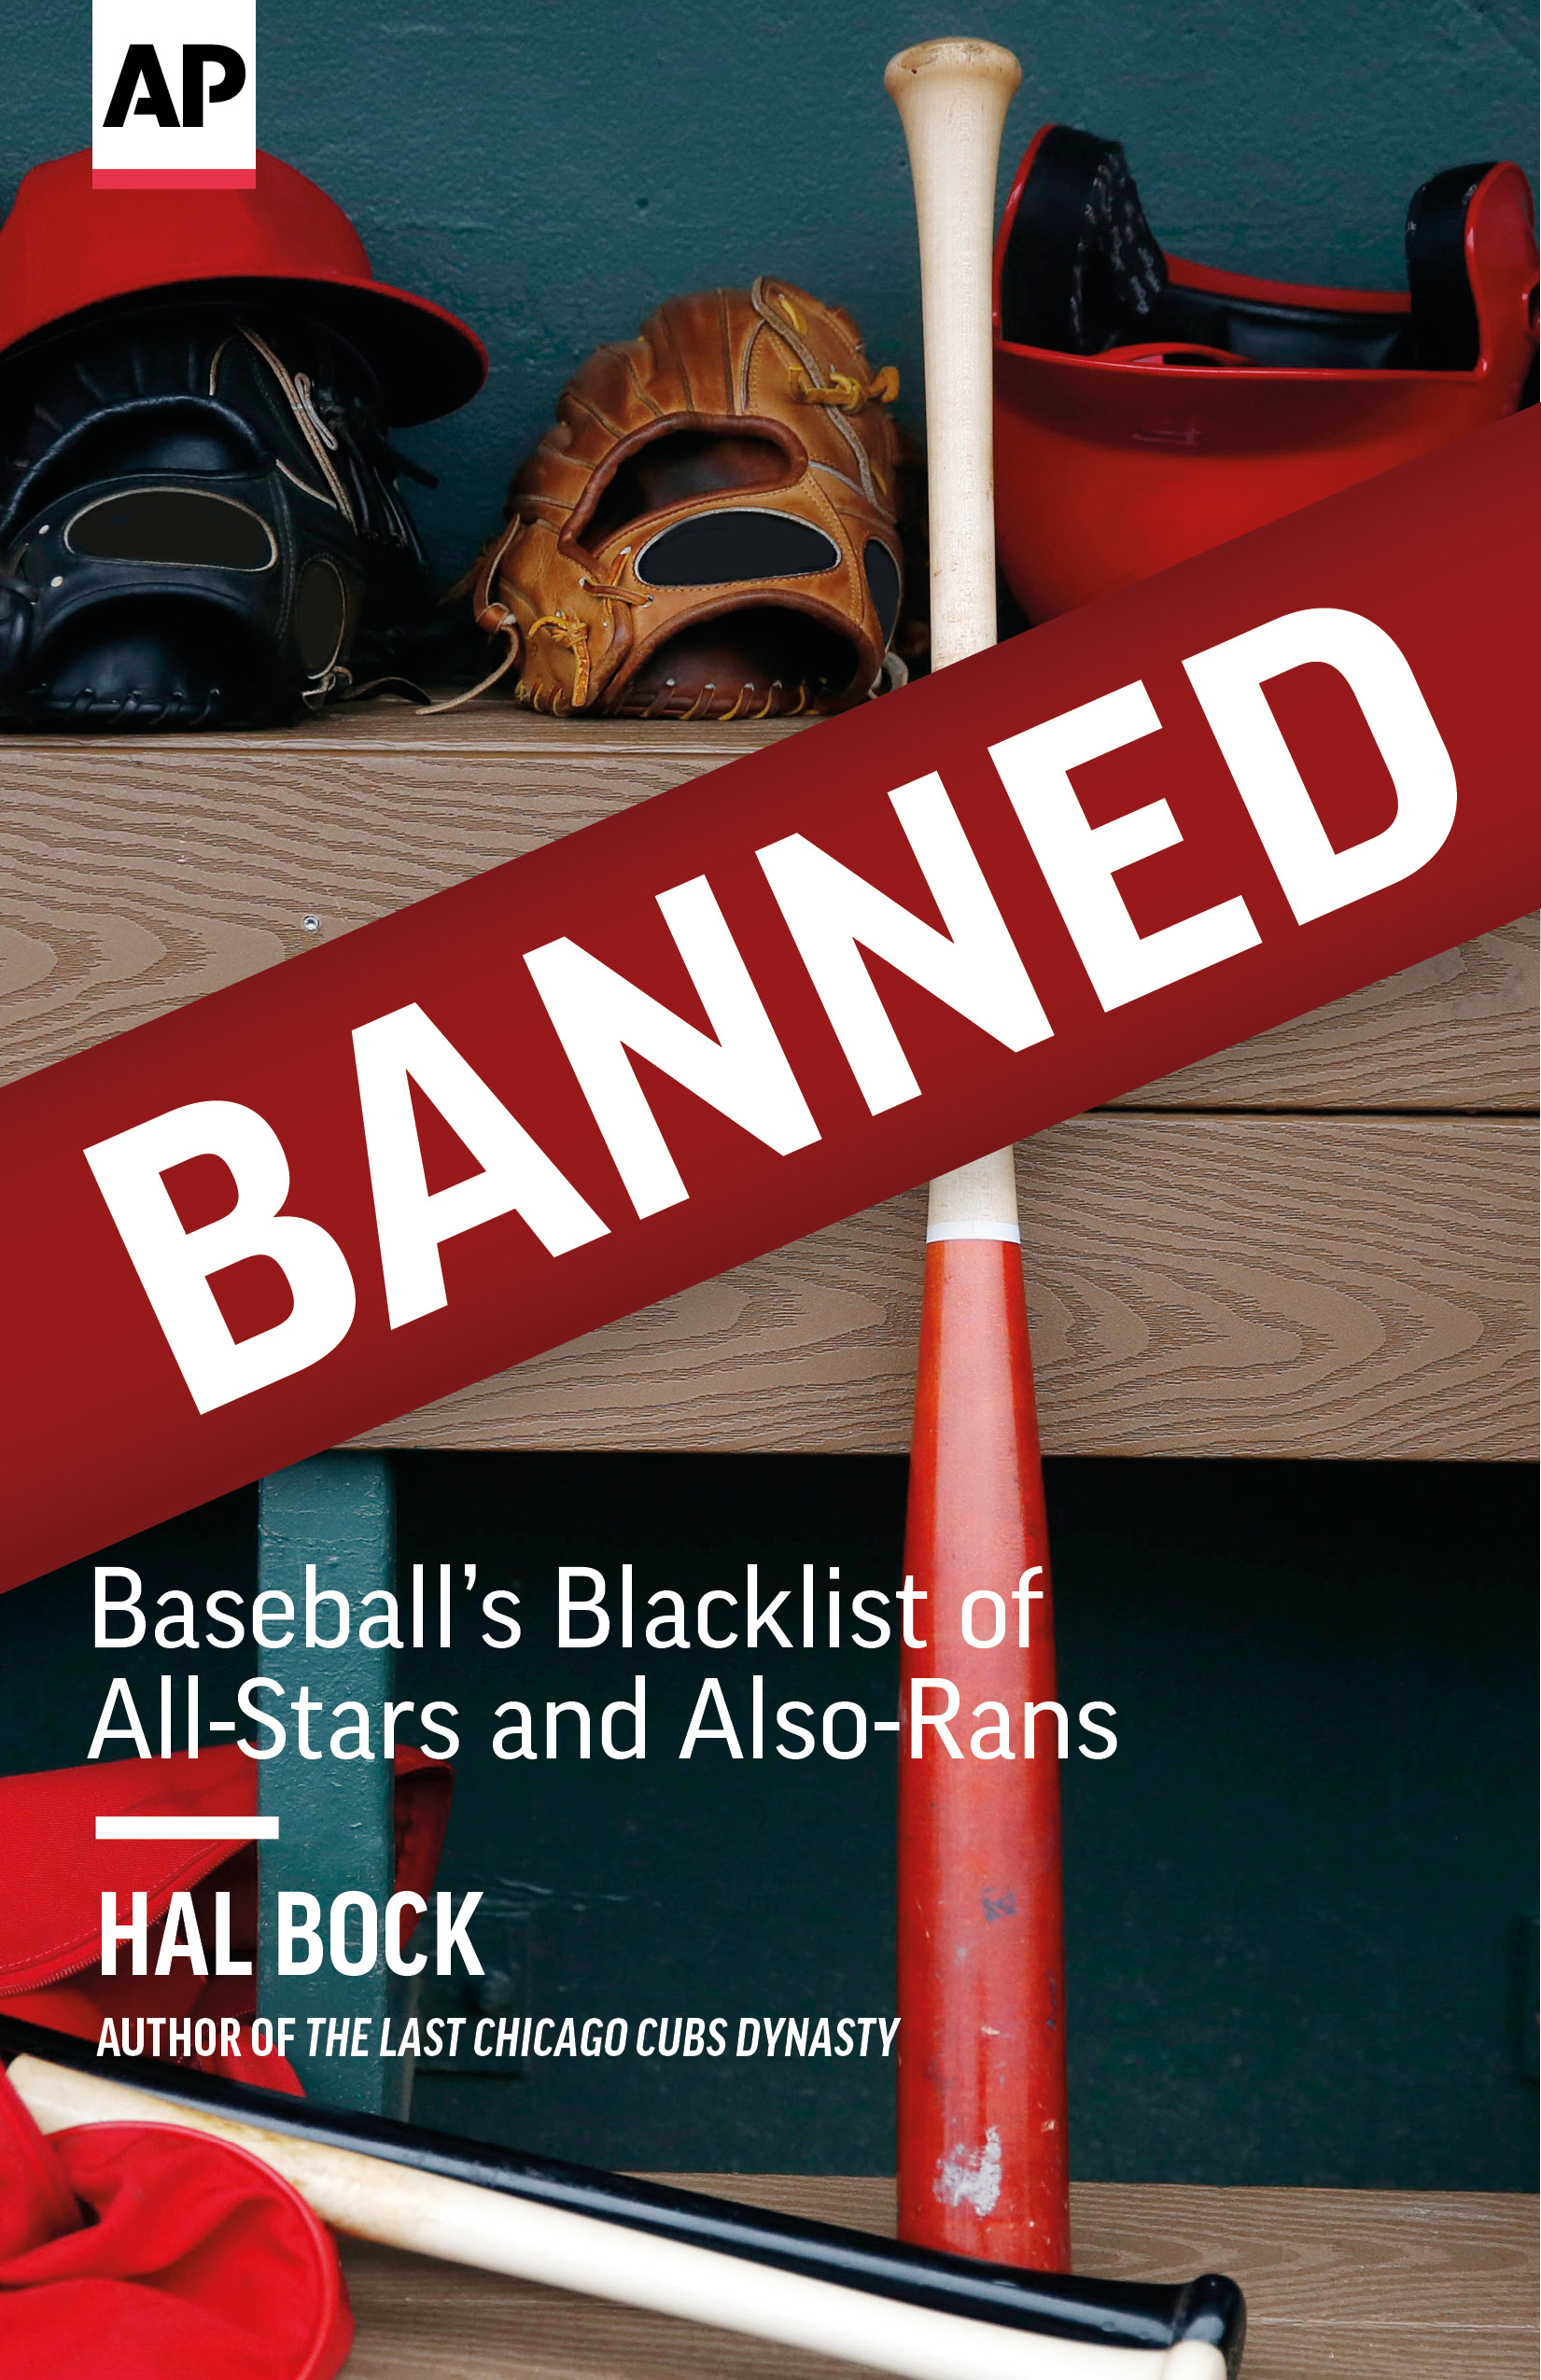 Banned: Baseball's Blacklist of All-Stars and Also-Rans by Hal Bock